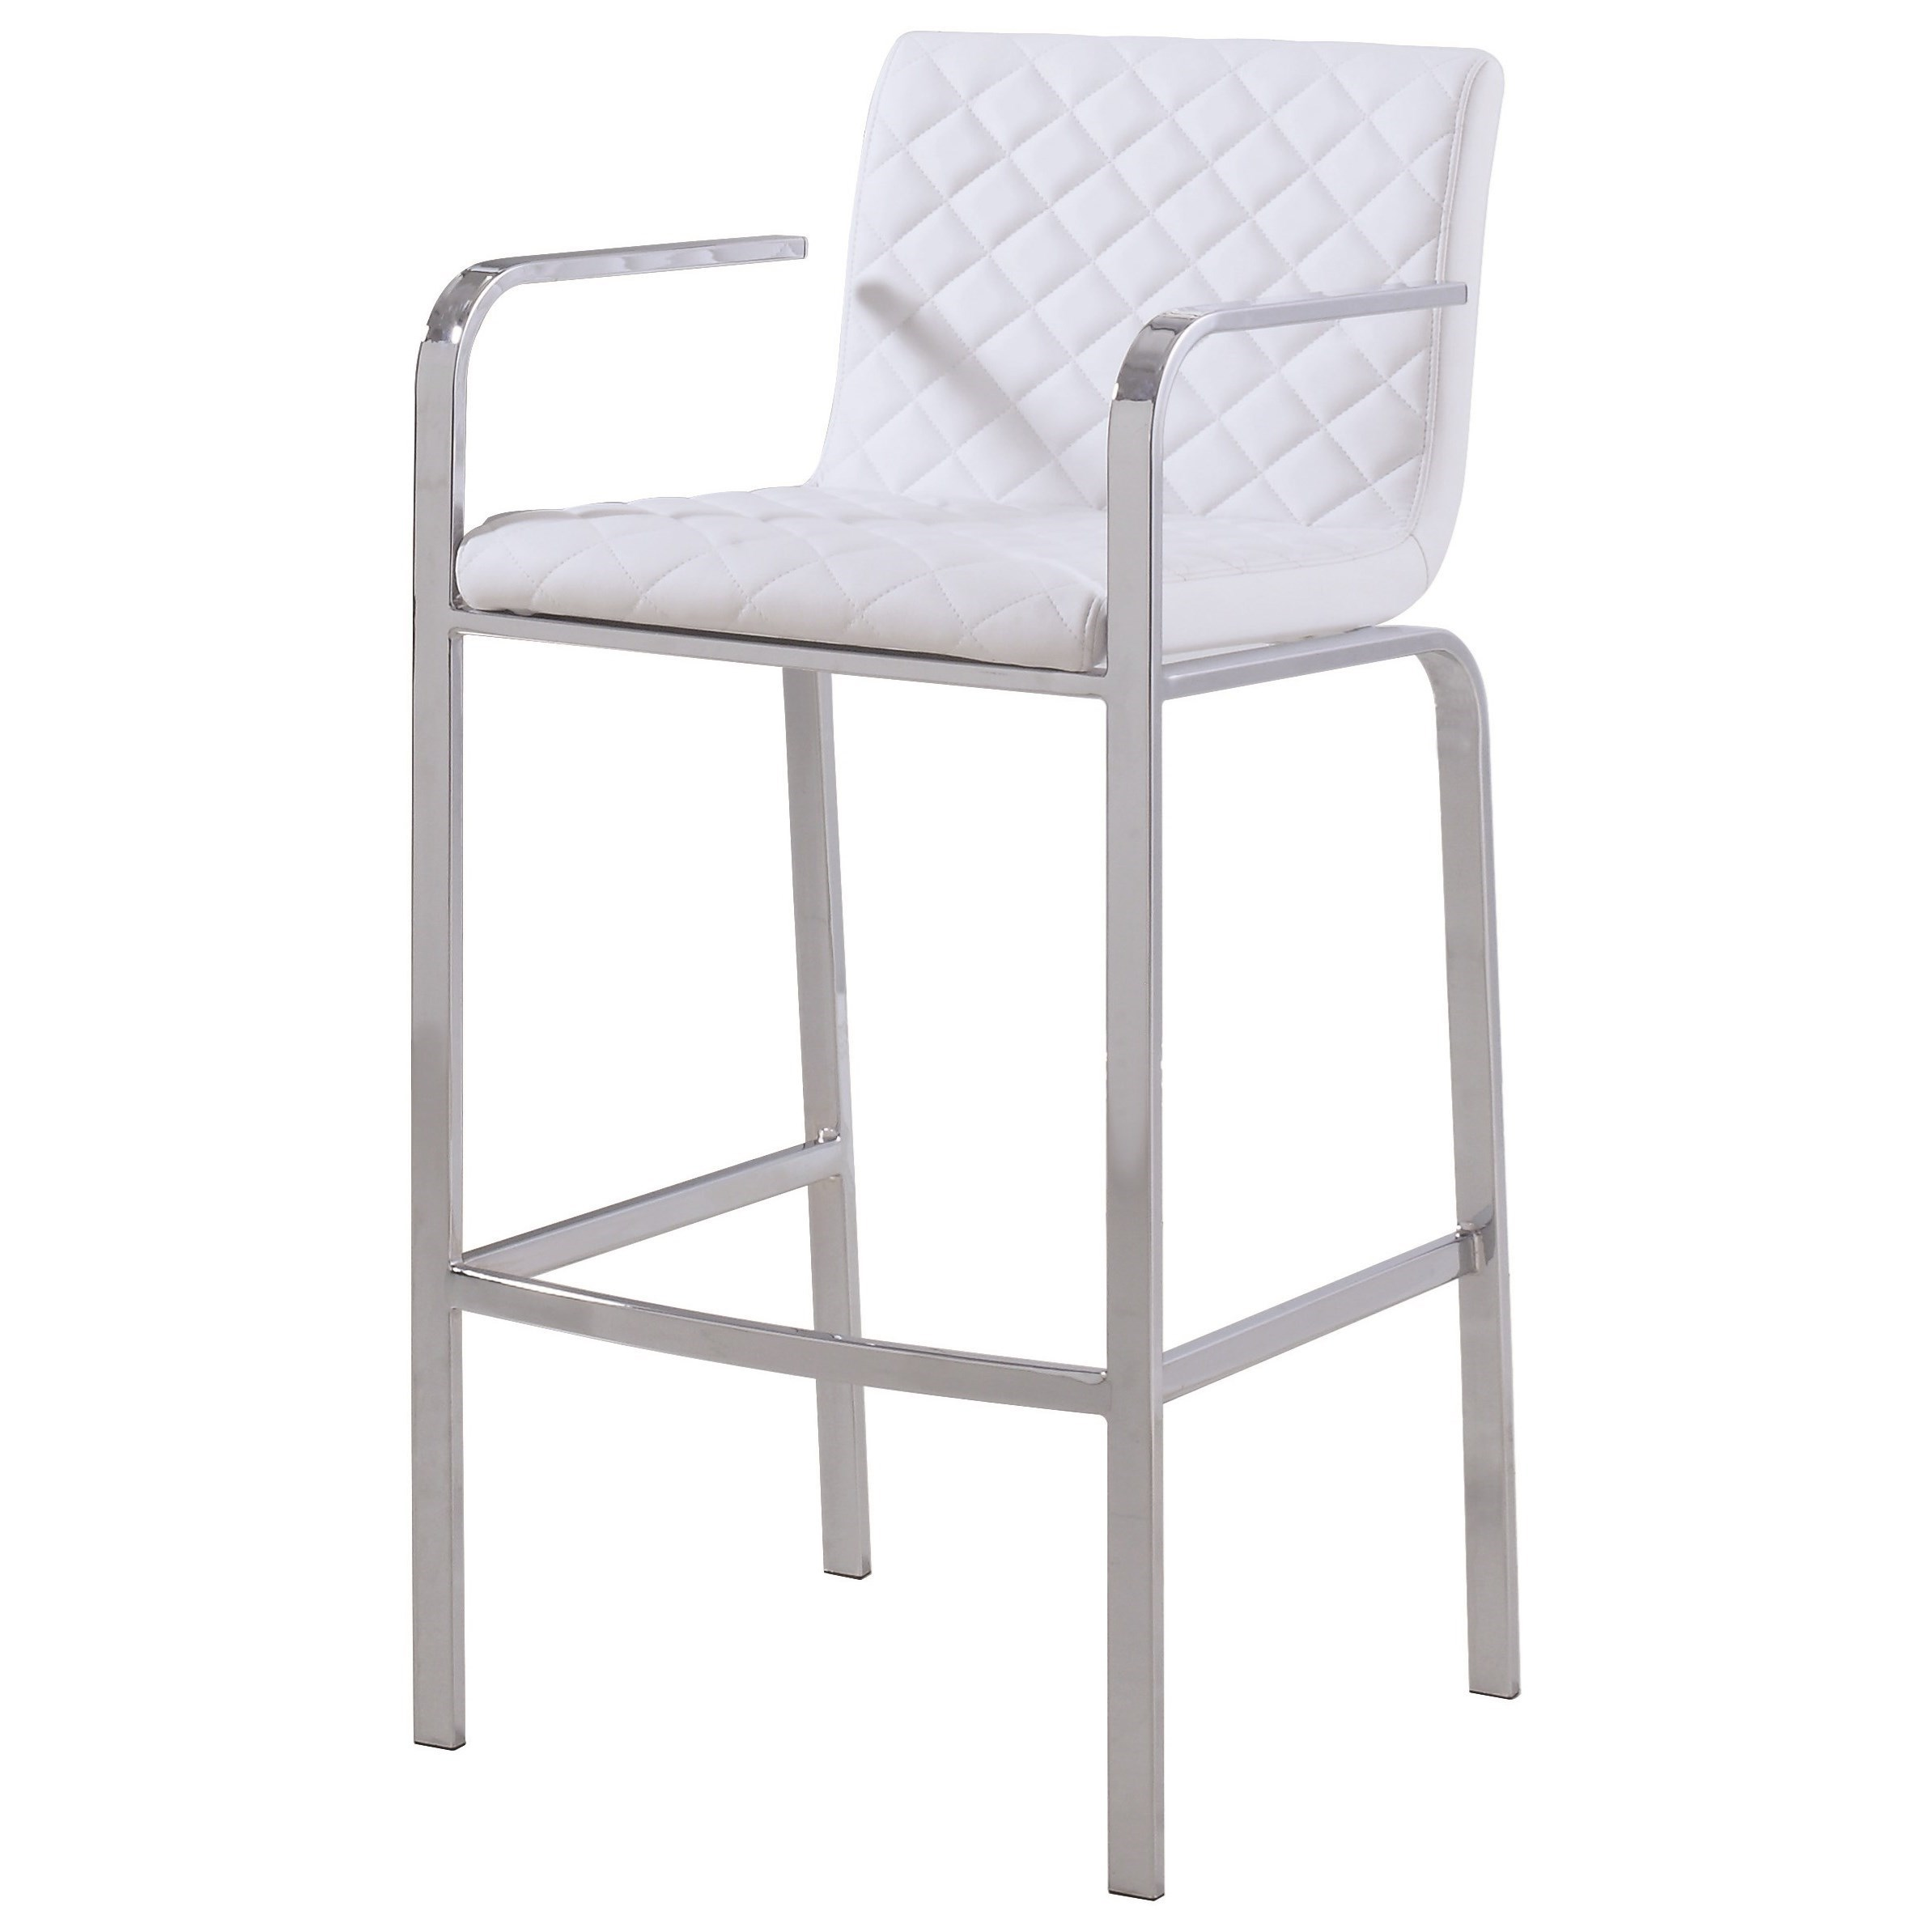 Upholstered Bar Chairs Dining Chairs And Bar Stools Contemporary Bar Stool With Quilted Upholstery By Coaster At Lapeer Furniture Mattress Center